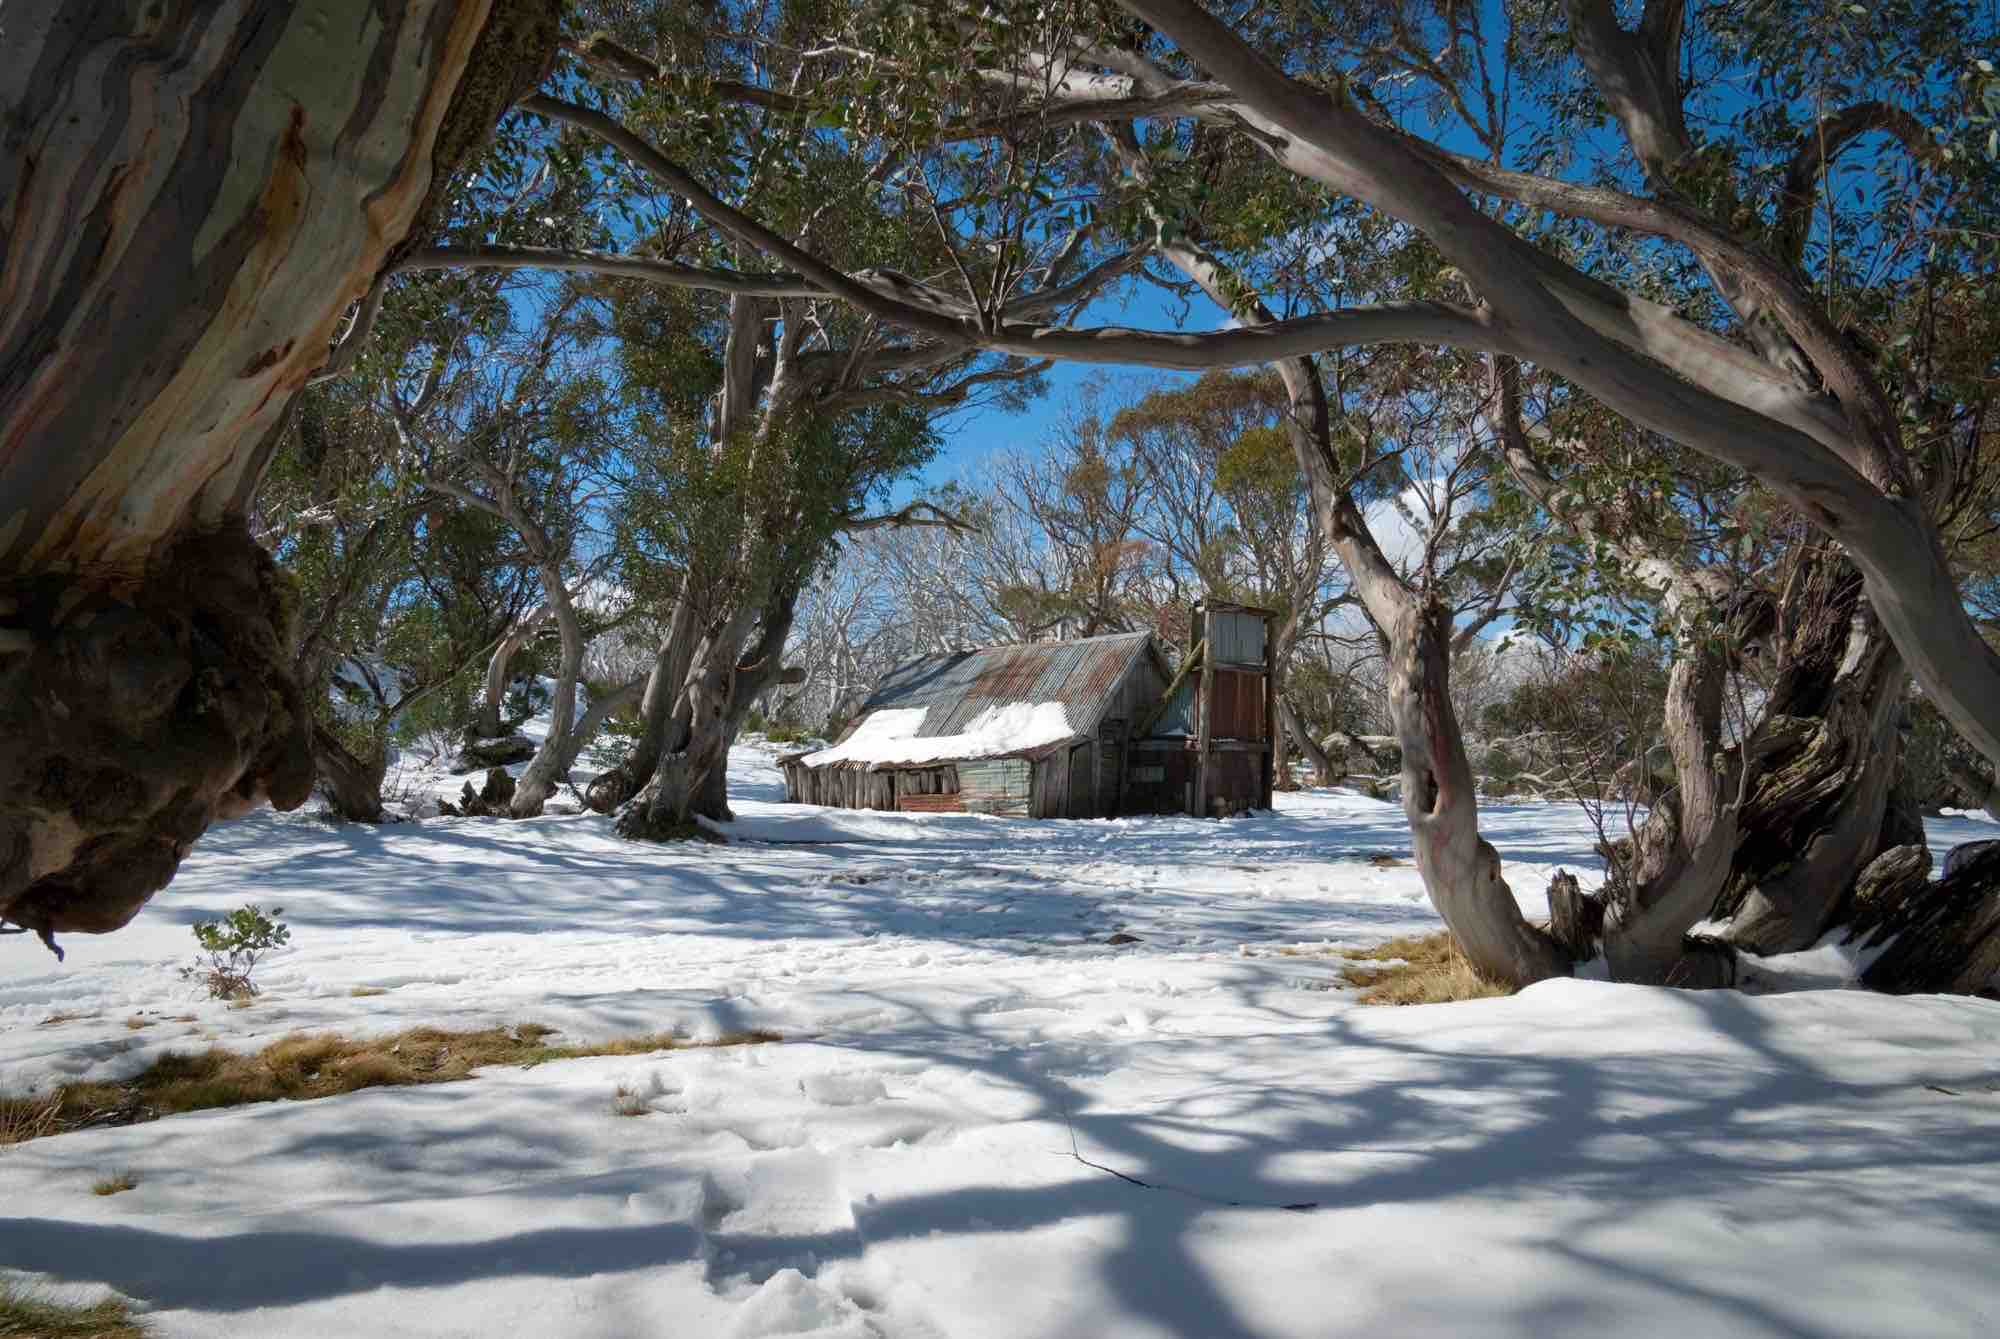 Snow in Australia at an old settler hut on Mt Bogong